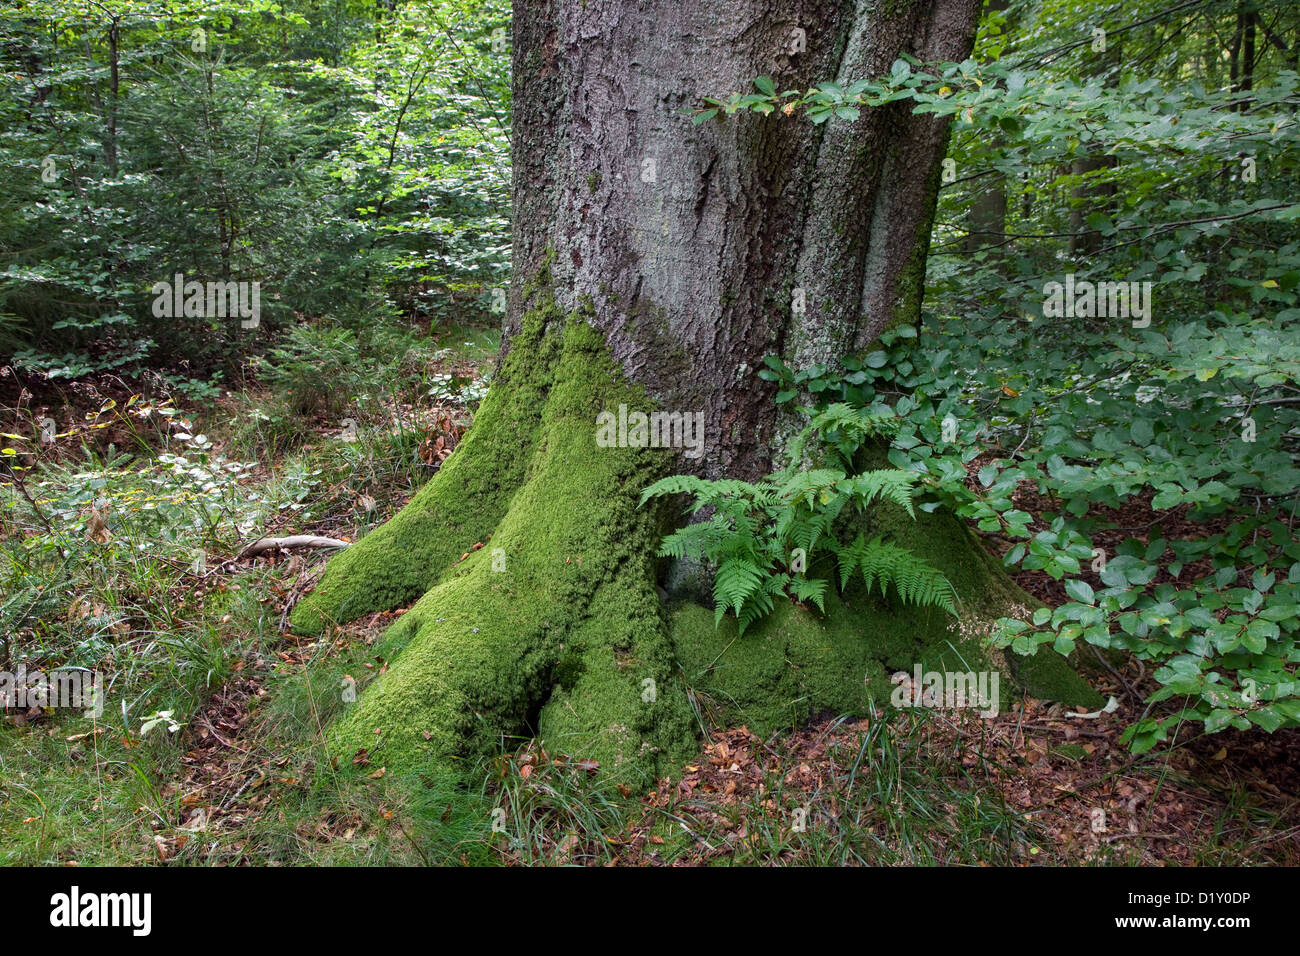 Common beech tree trunk (Fagus sylvatica) in broad-leaved forest in summer - Stock Image